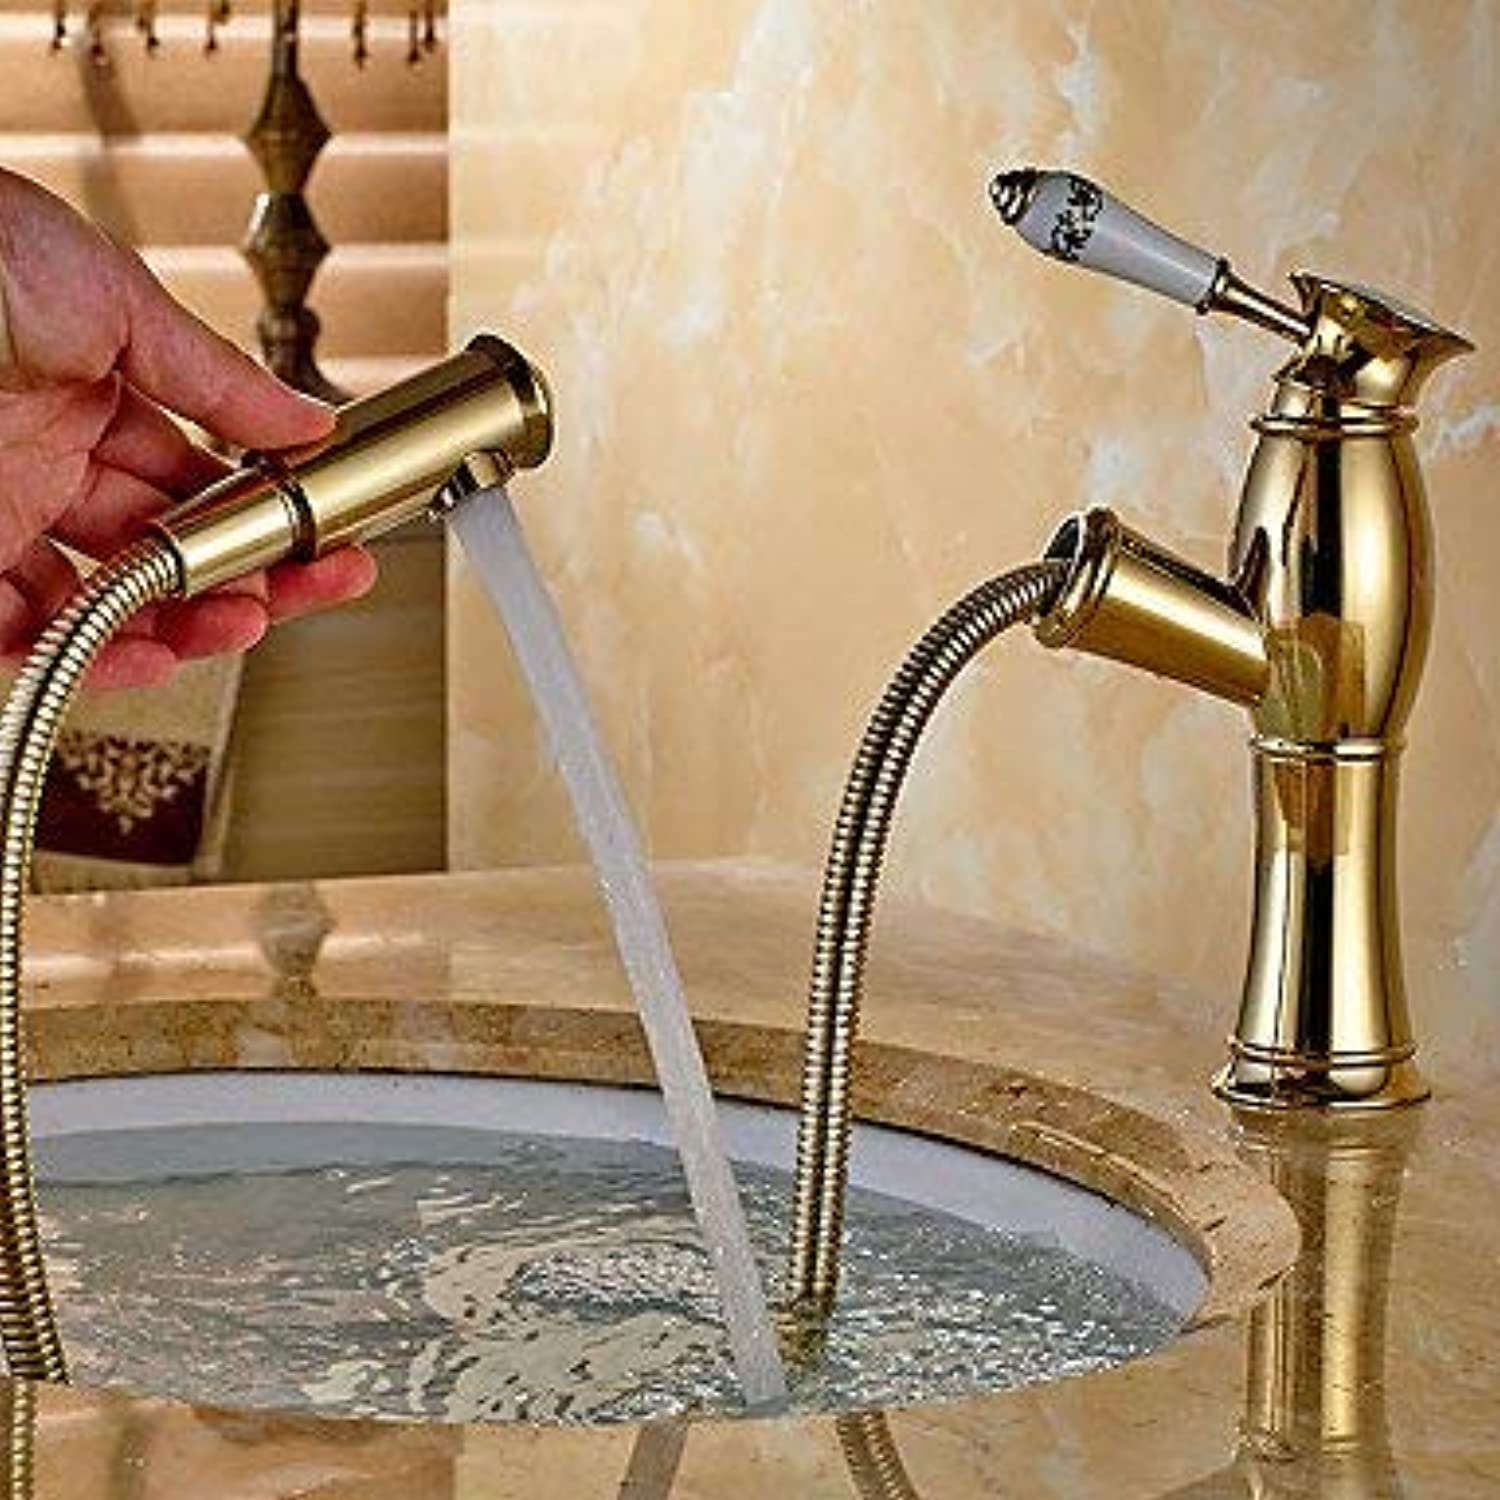 Wghz Ti-PVD 1-hole brass single-lever redary sink faucet